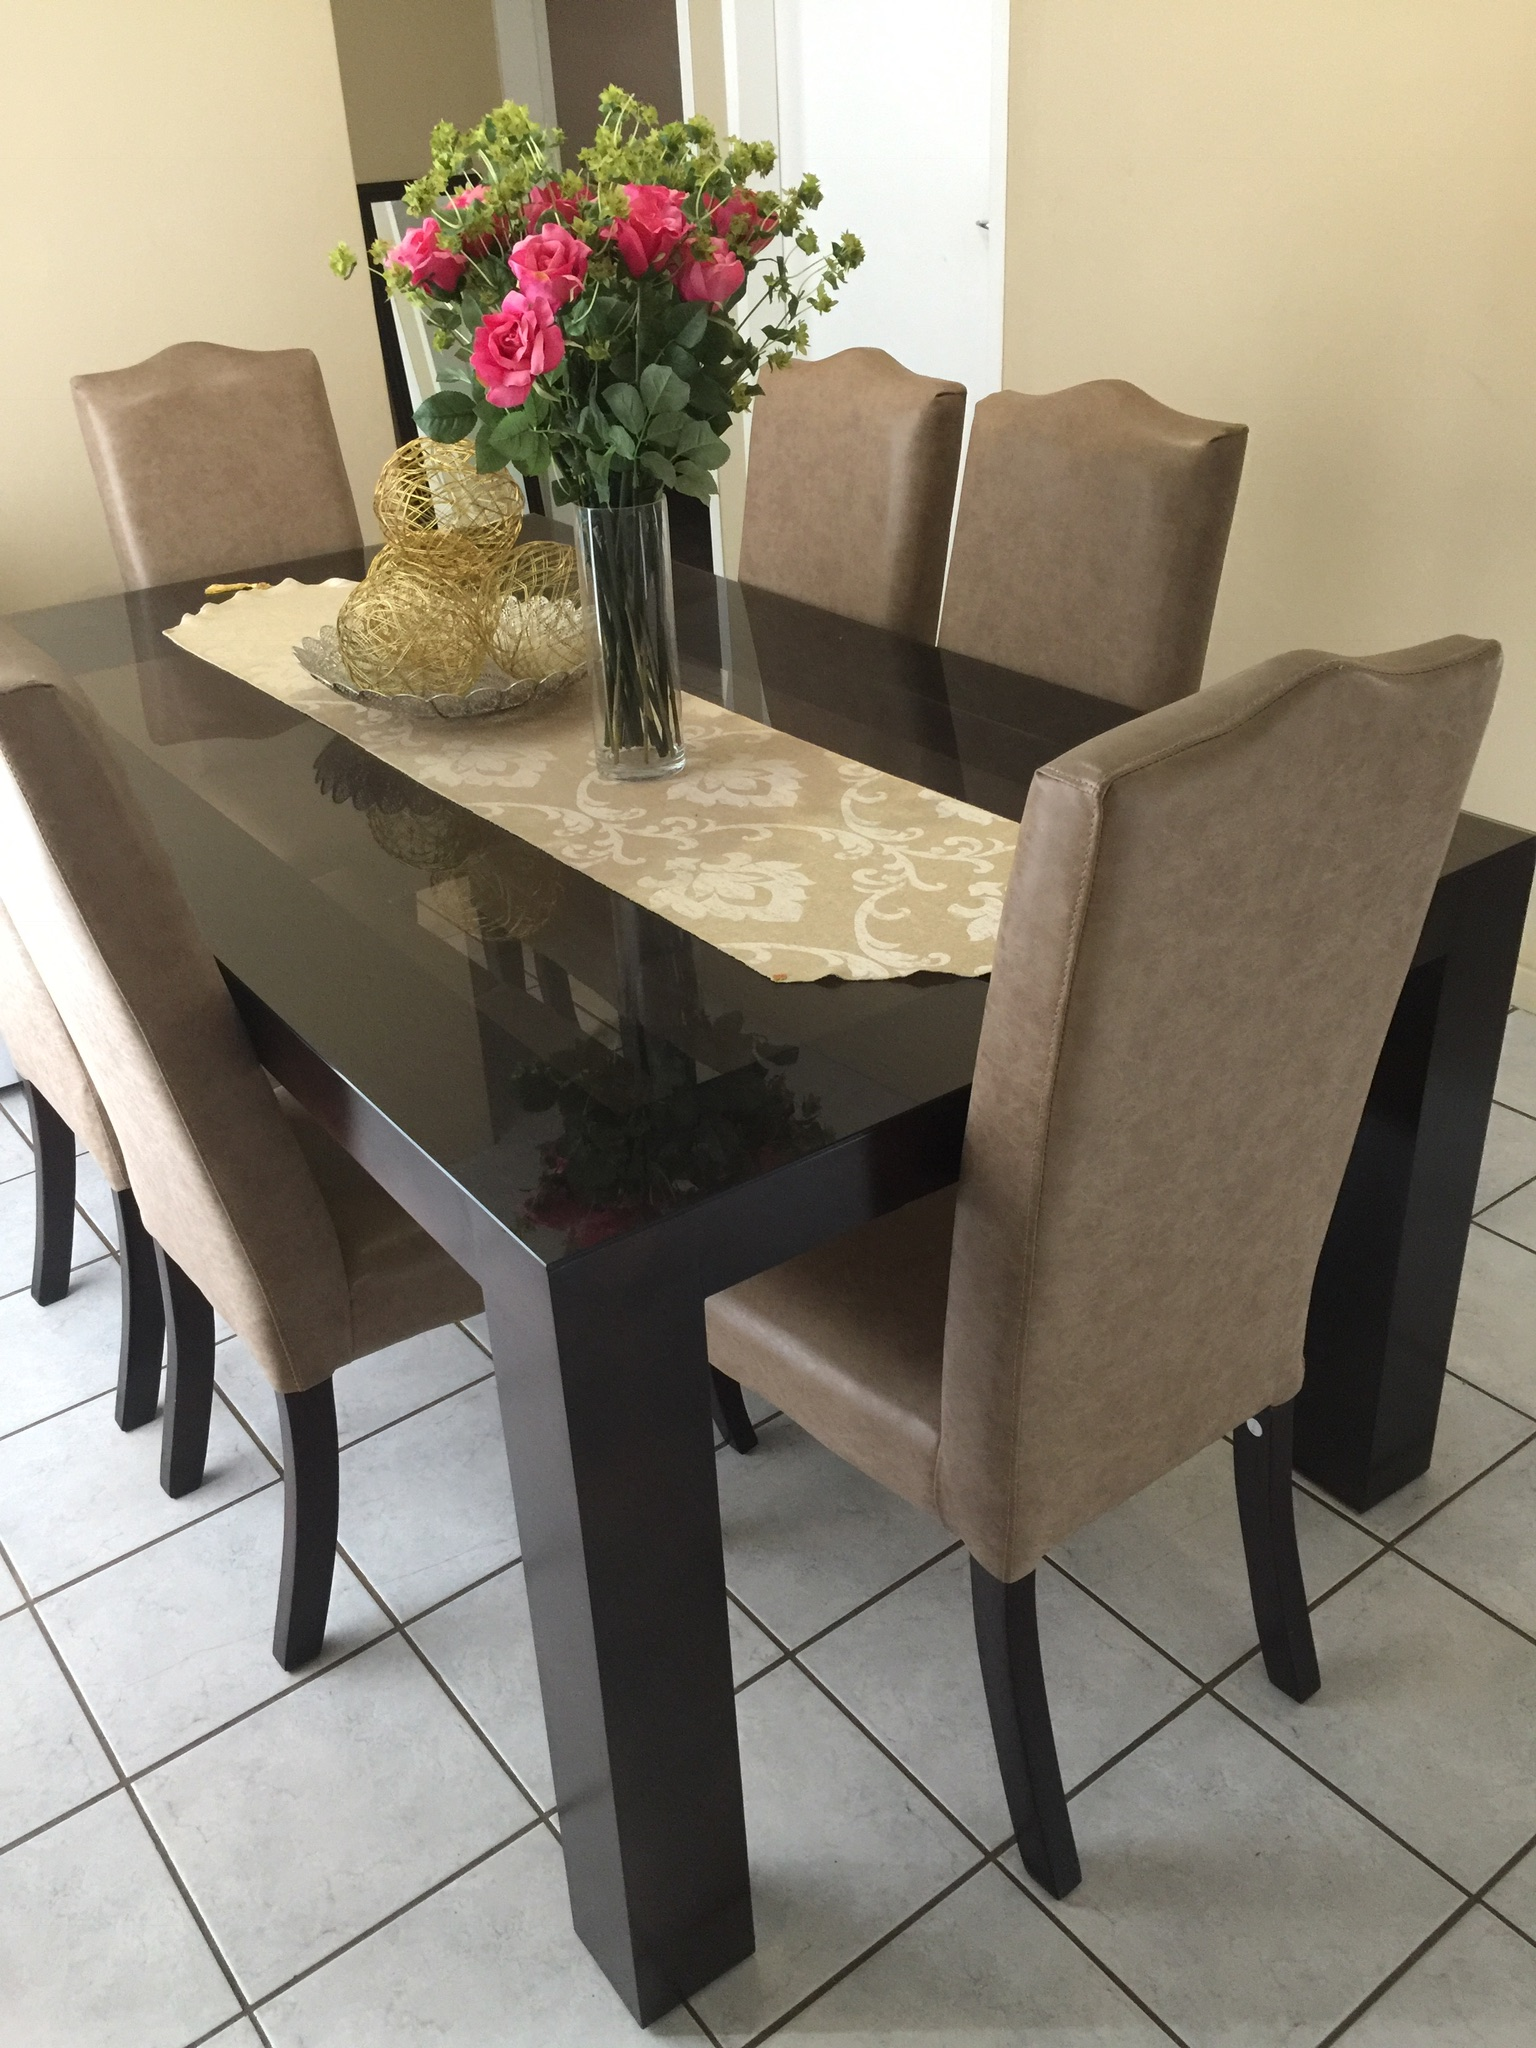 Relocating For Sale In Dining Room Furniture South Africa Junk Mail Rh Junkmail Co Za